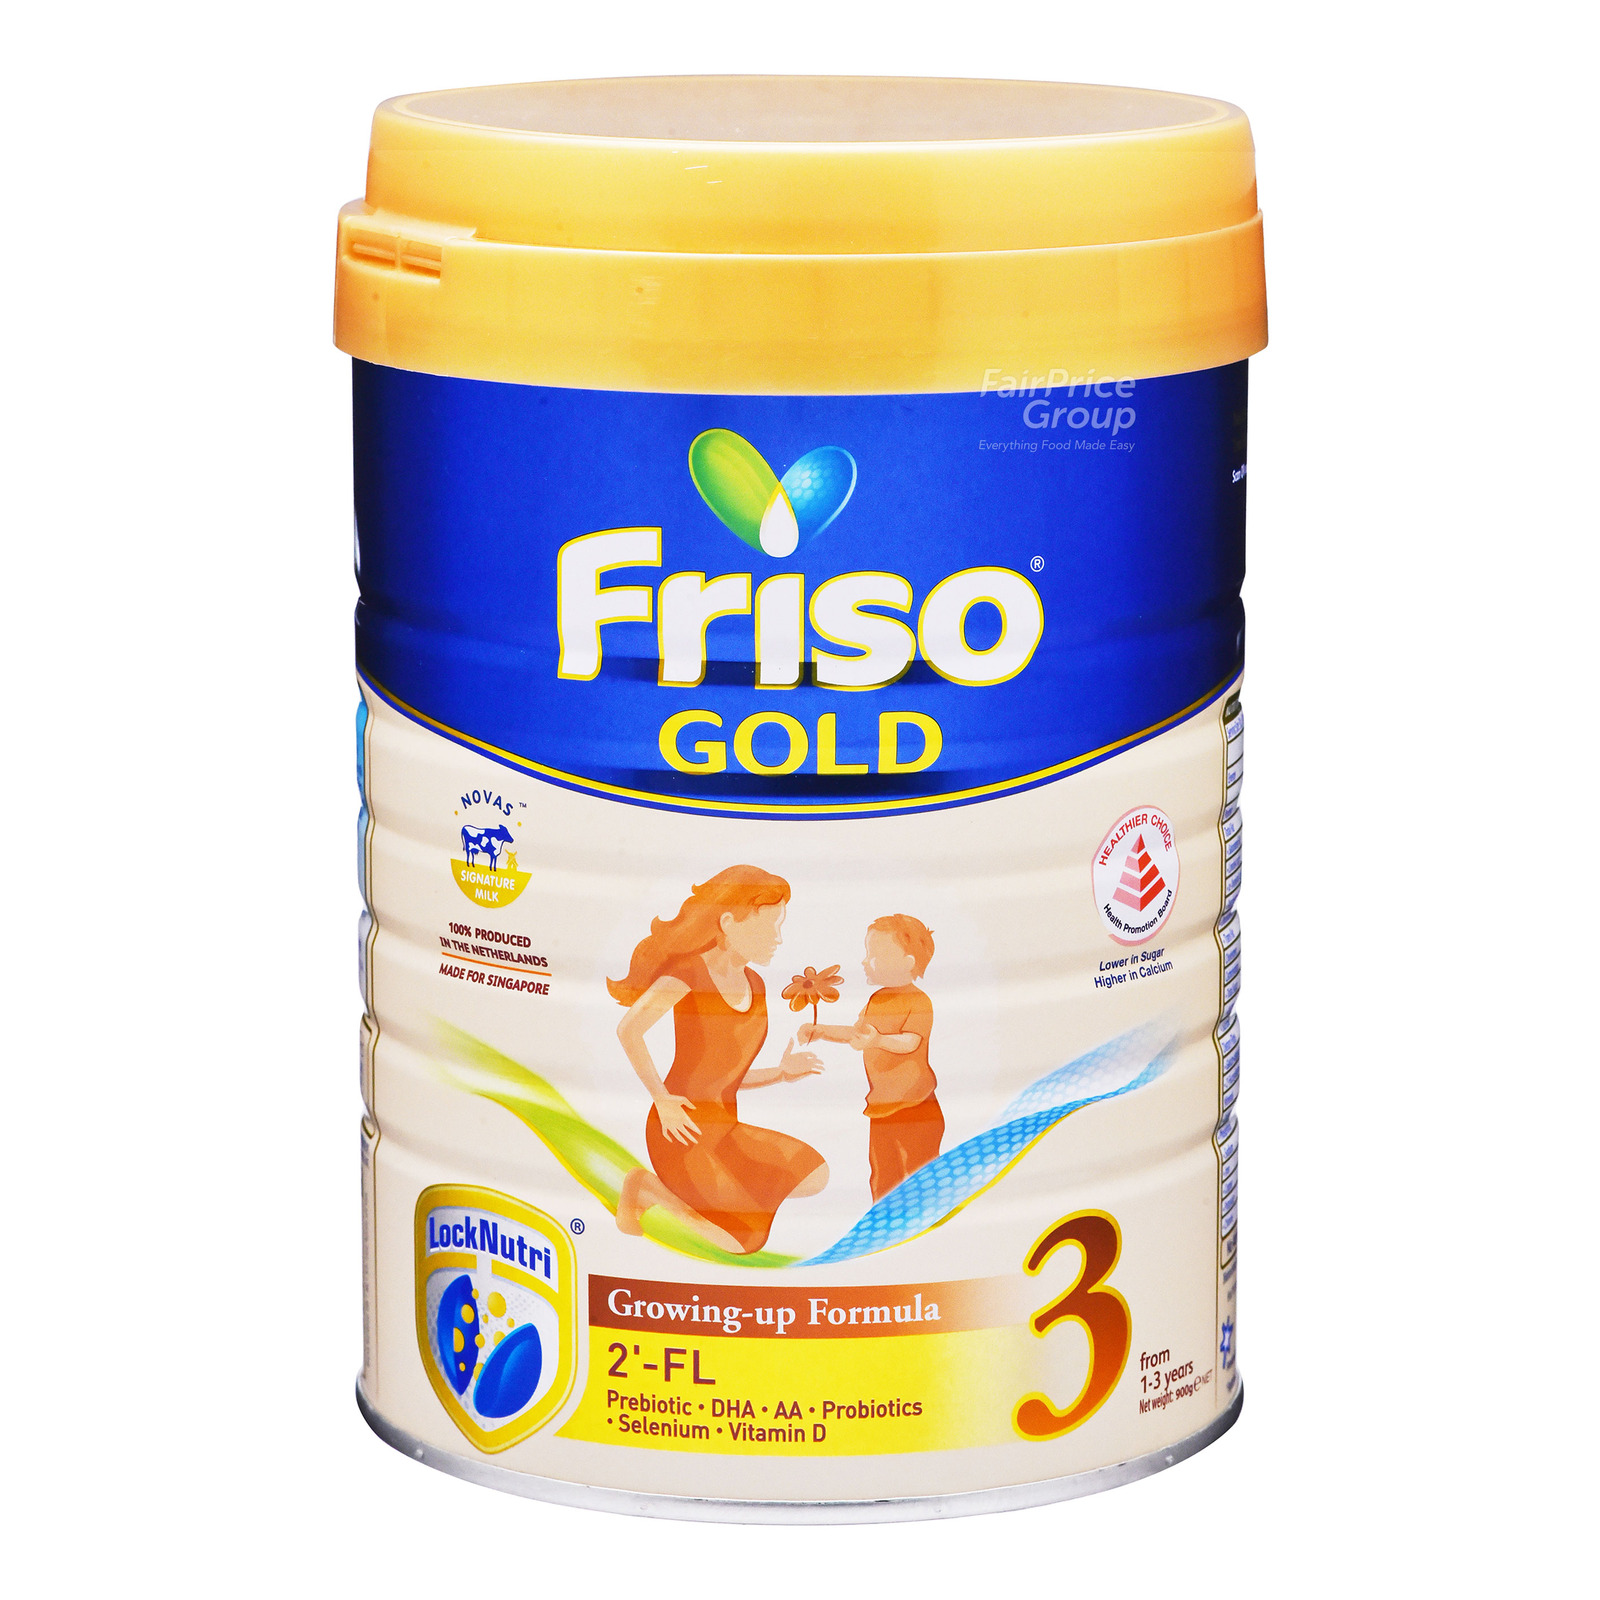 Frisolac Gold Growing-up Formula - Stage 3